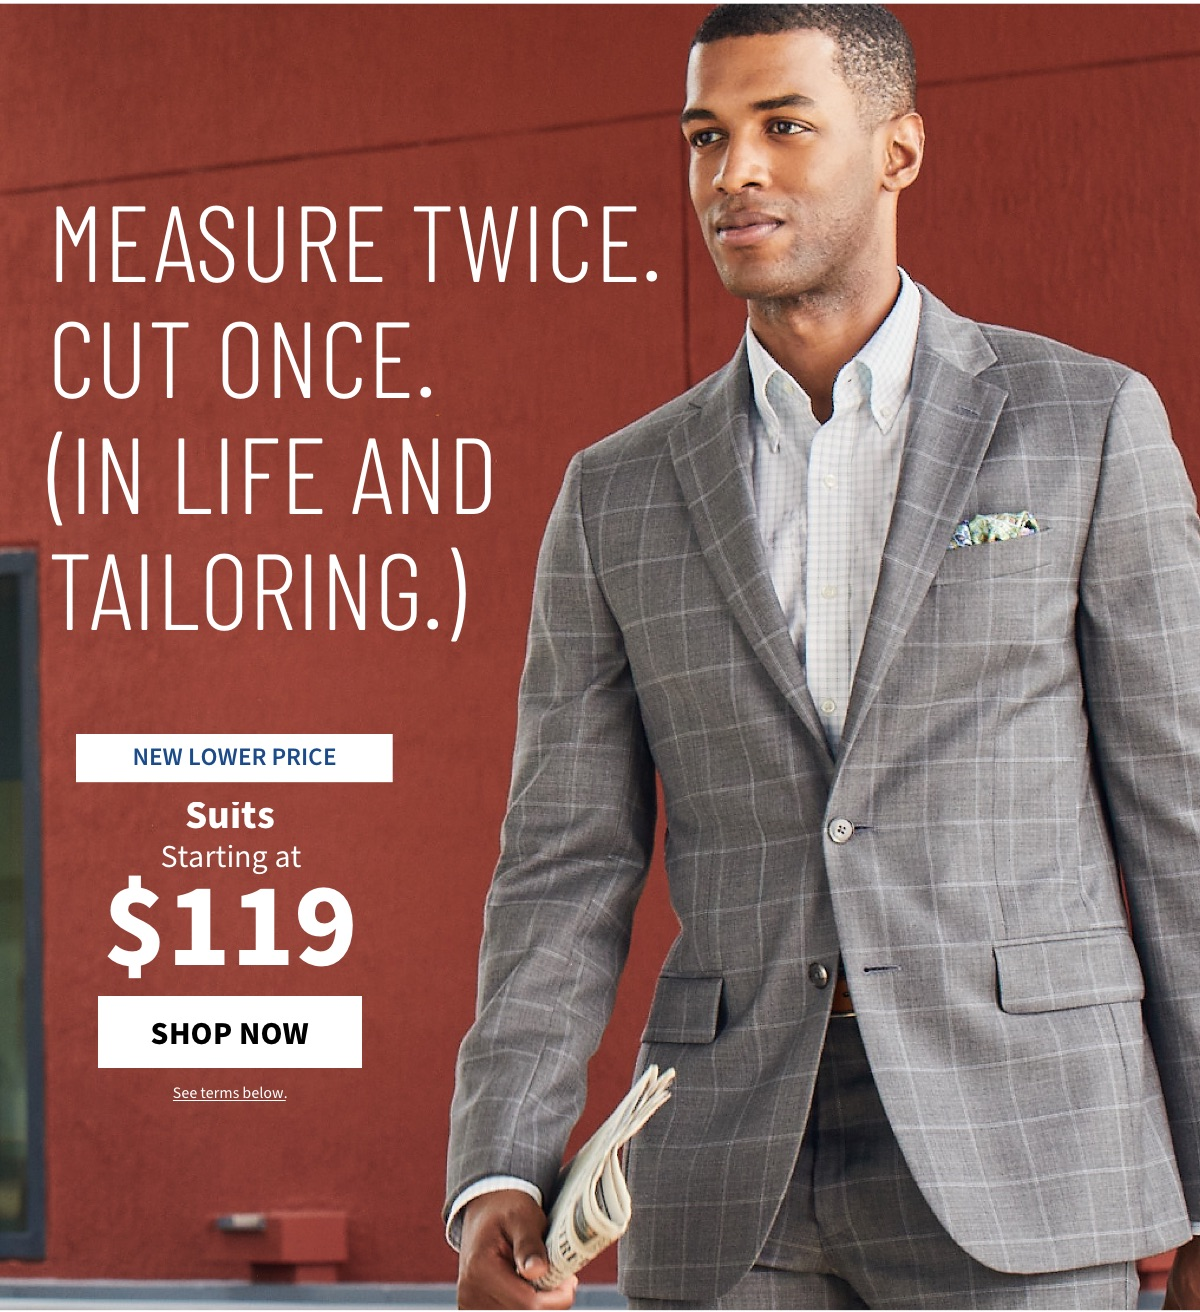 Suits Starting at $119 - Shop Now